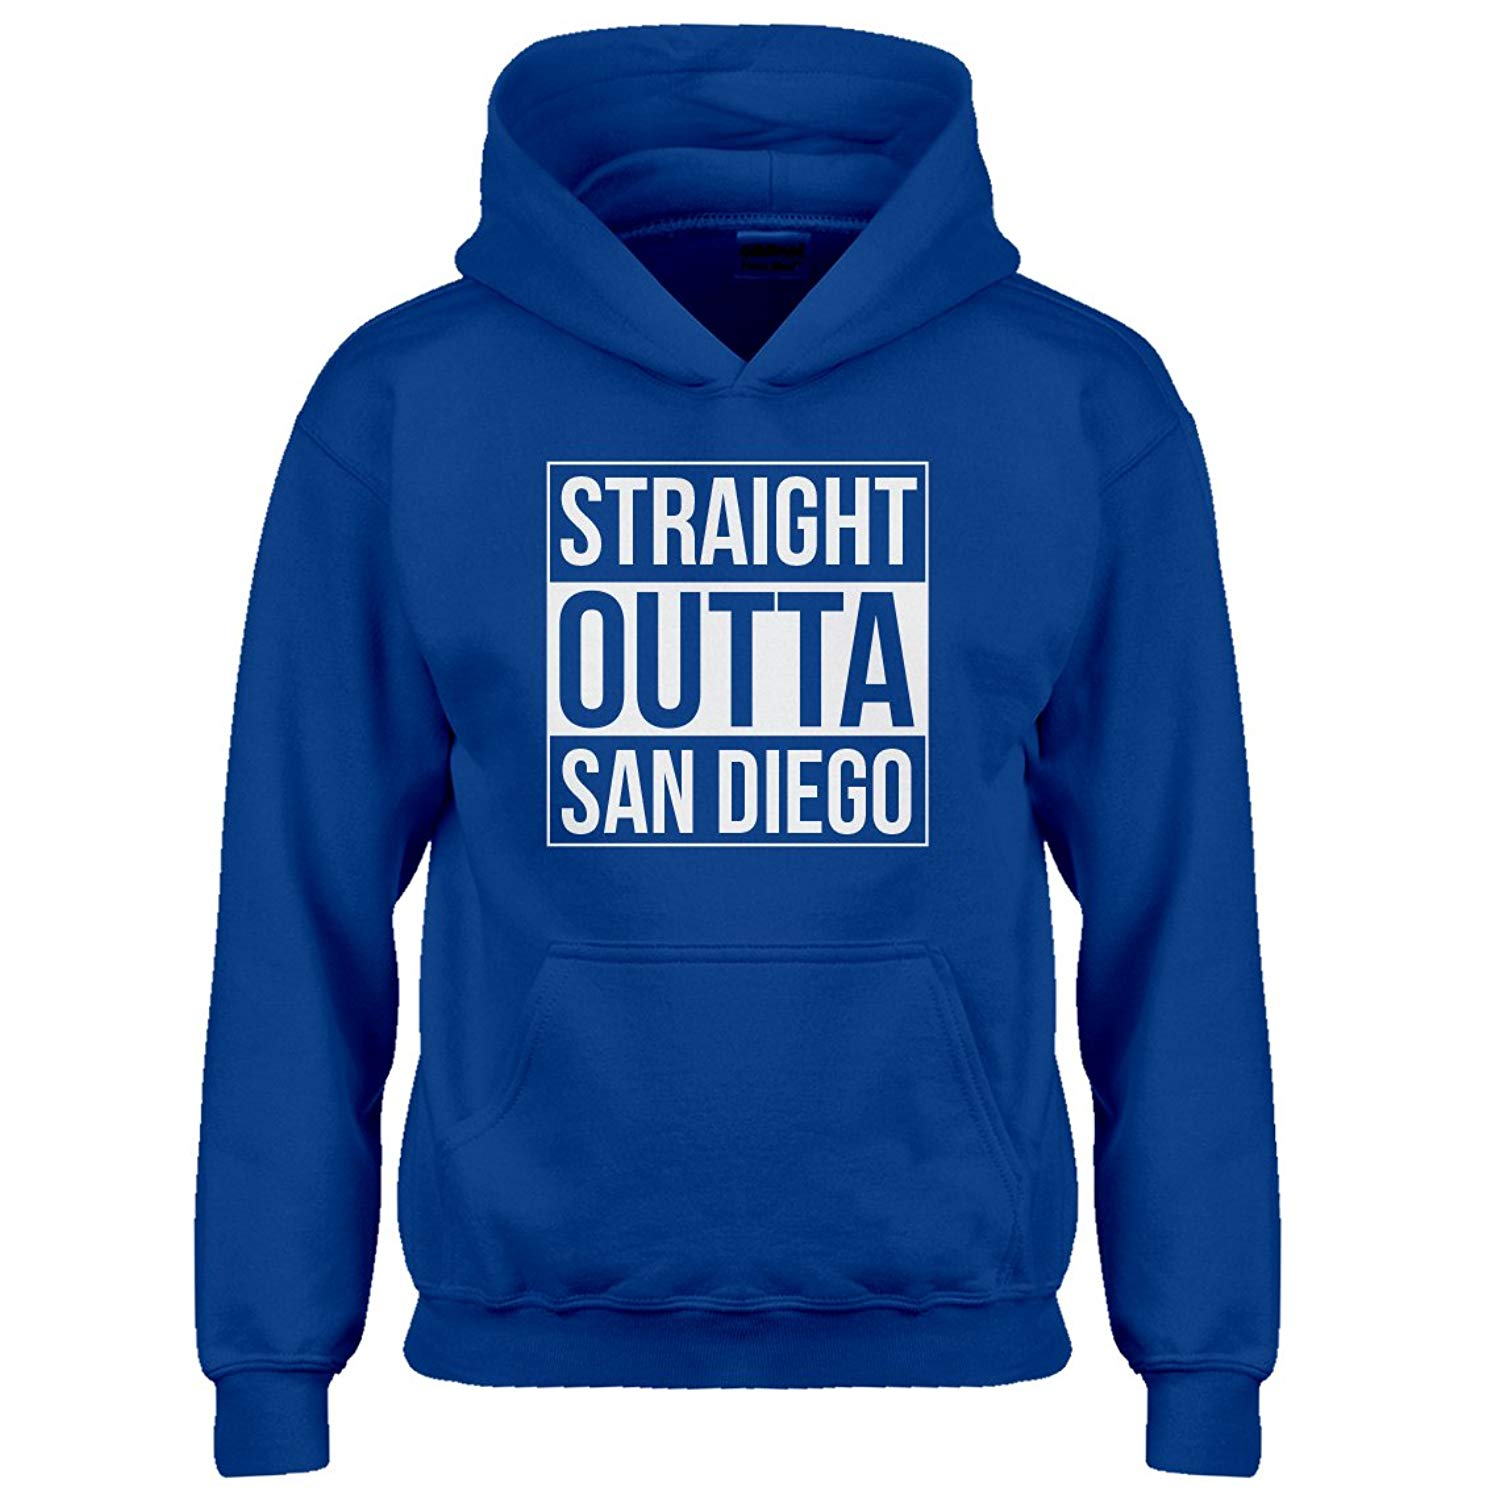 Indica Plateau Youth Straight Outta San Diego Kids Hoodie